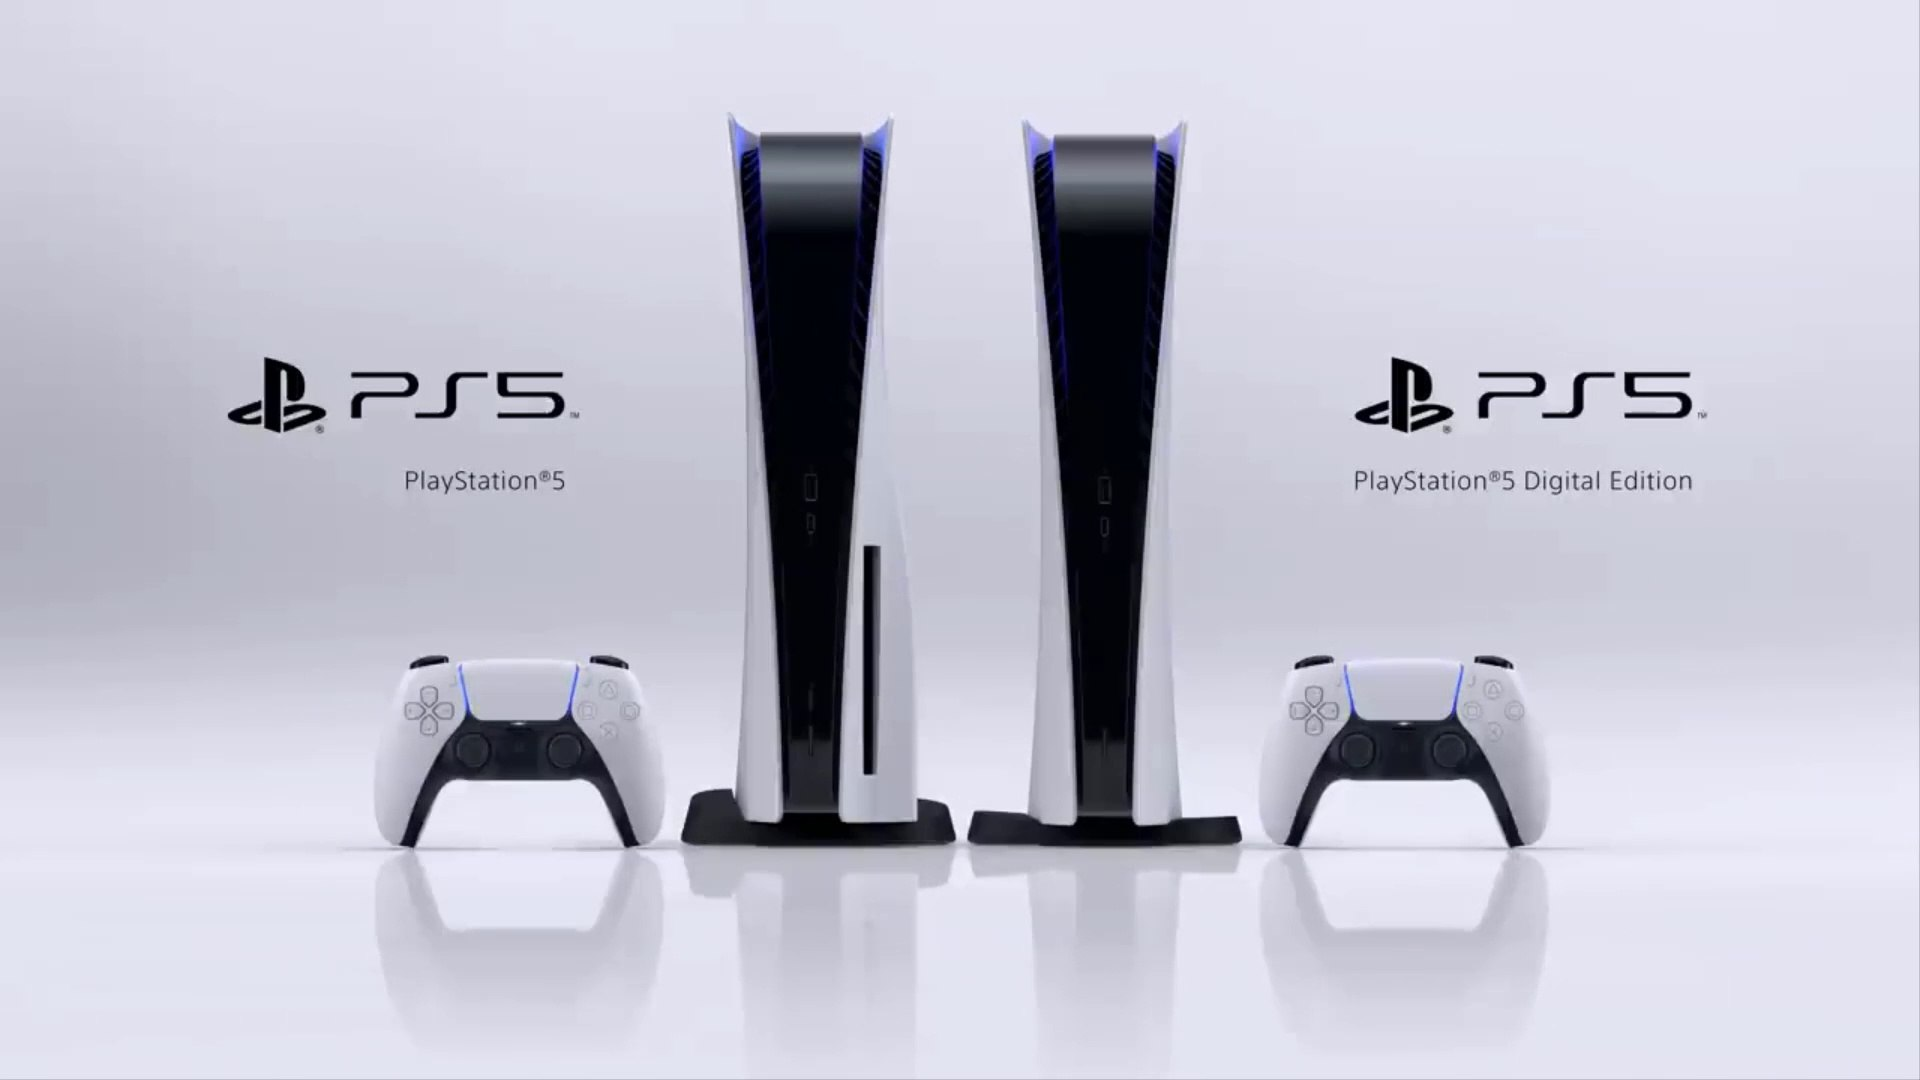 PS5 trailer | PS5 2020 | PS5 Sony | PS5 2021 | The Latest PS | playstation5 | PS5 teaser |PS5 model.